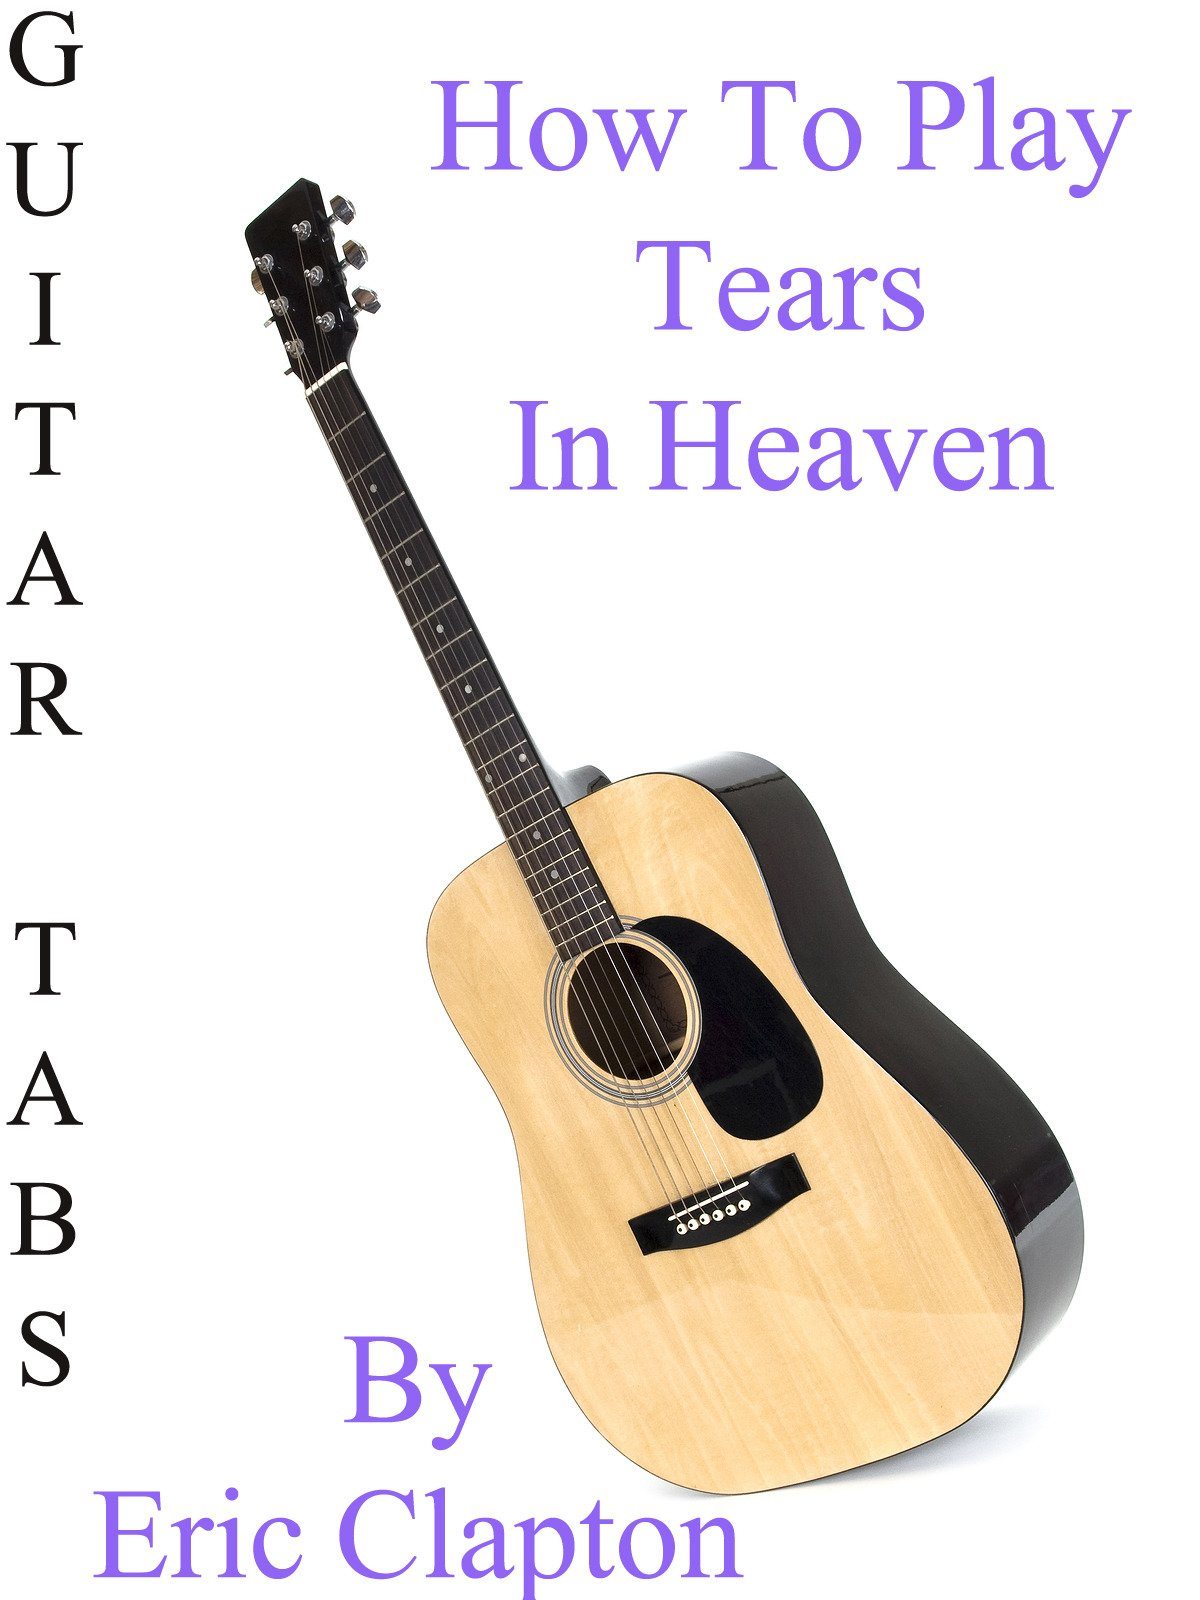 How to play heaven 45